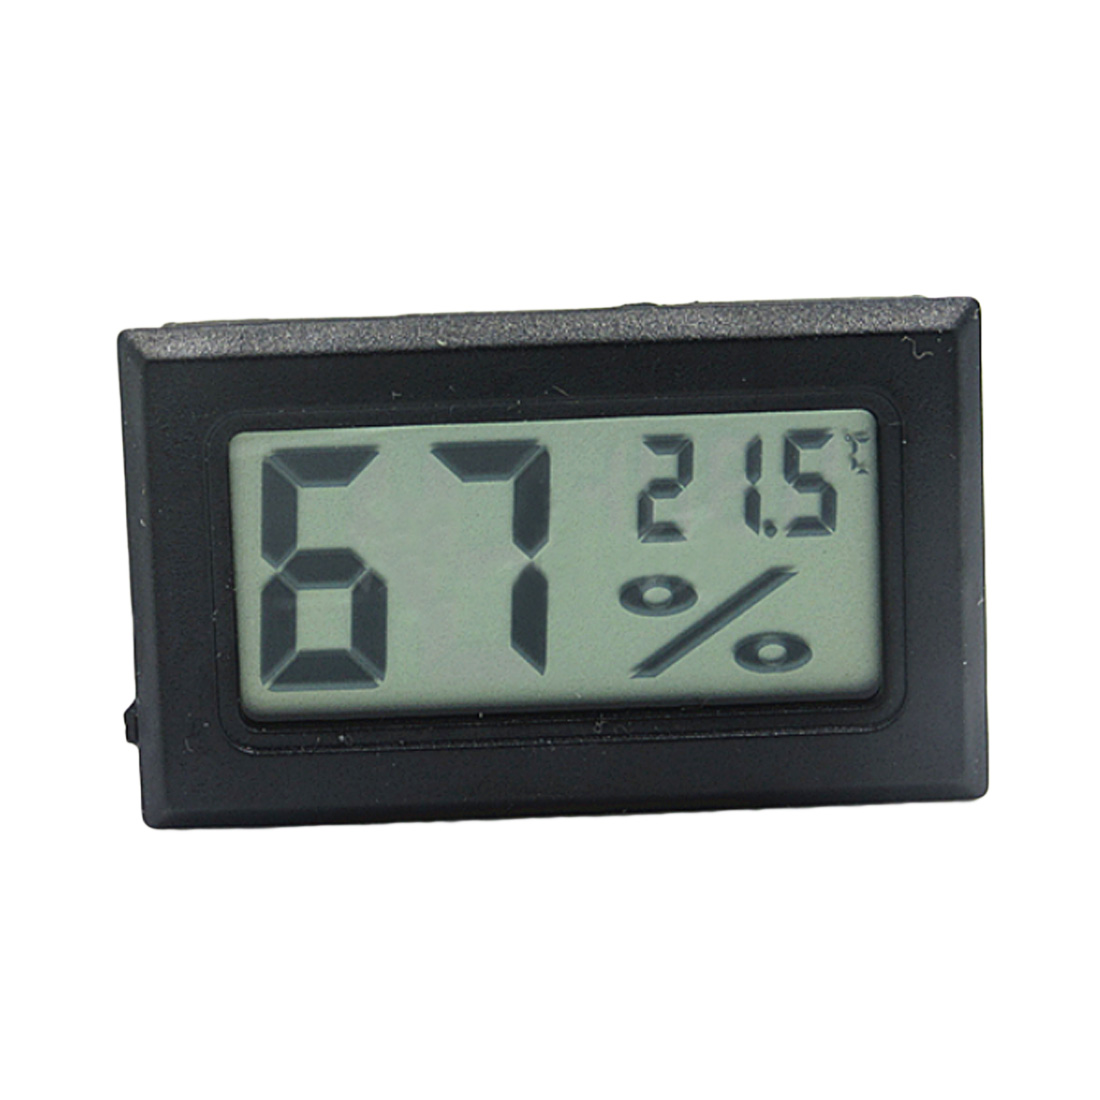 1 PCS Mini LCD Digital Thermometer Hygrometer Temperature Indoor Convenient Temperature Sensor Humidity Meter Gauge Instruments leicester city west ham